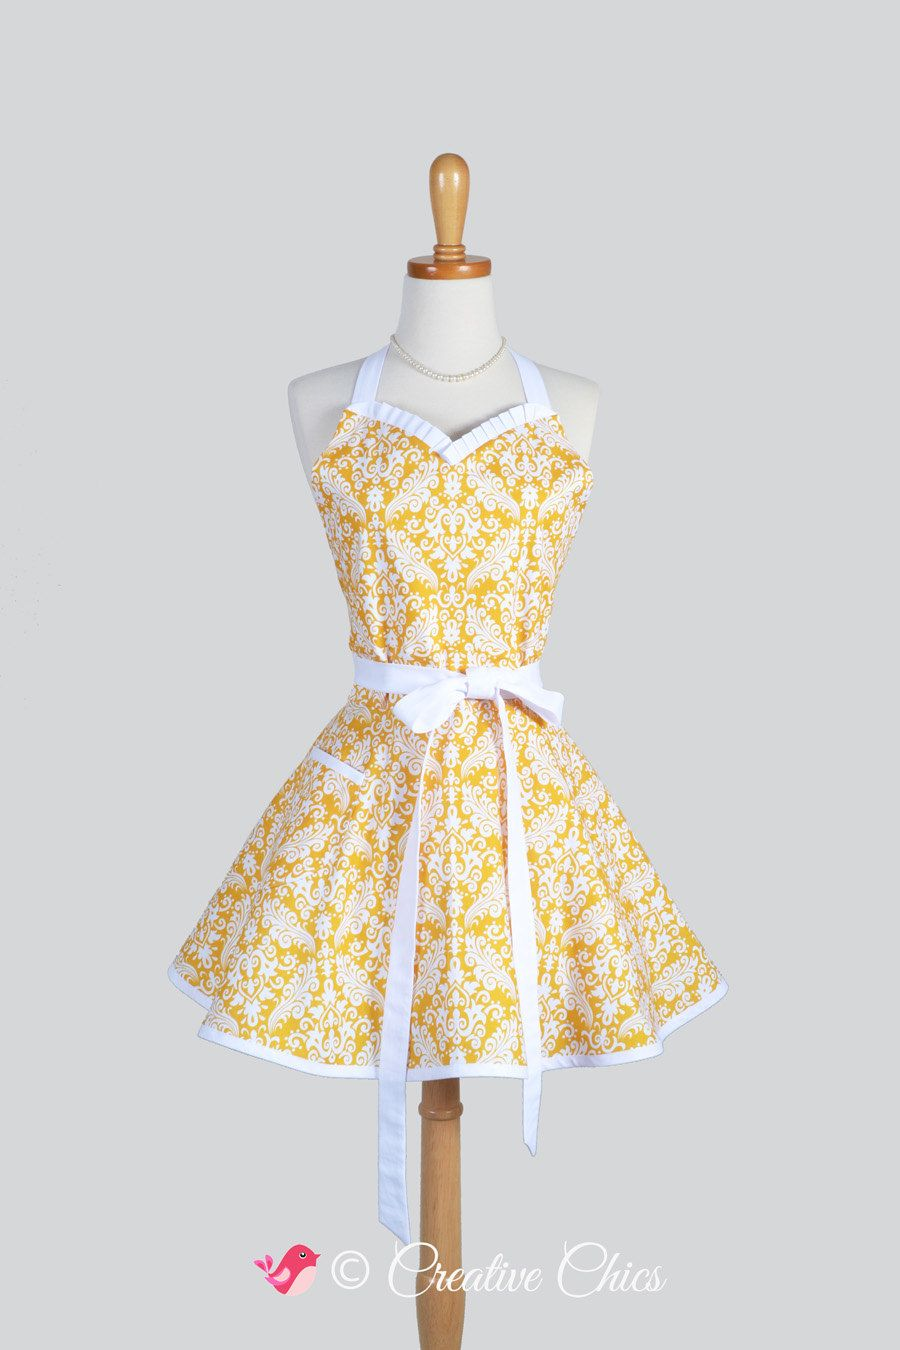 White apron meals - Sweetheart Retro Apron Retro Cute Womens Apron Feminine And Flirty In Yellow And White Damask